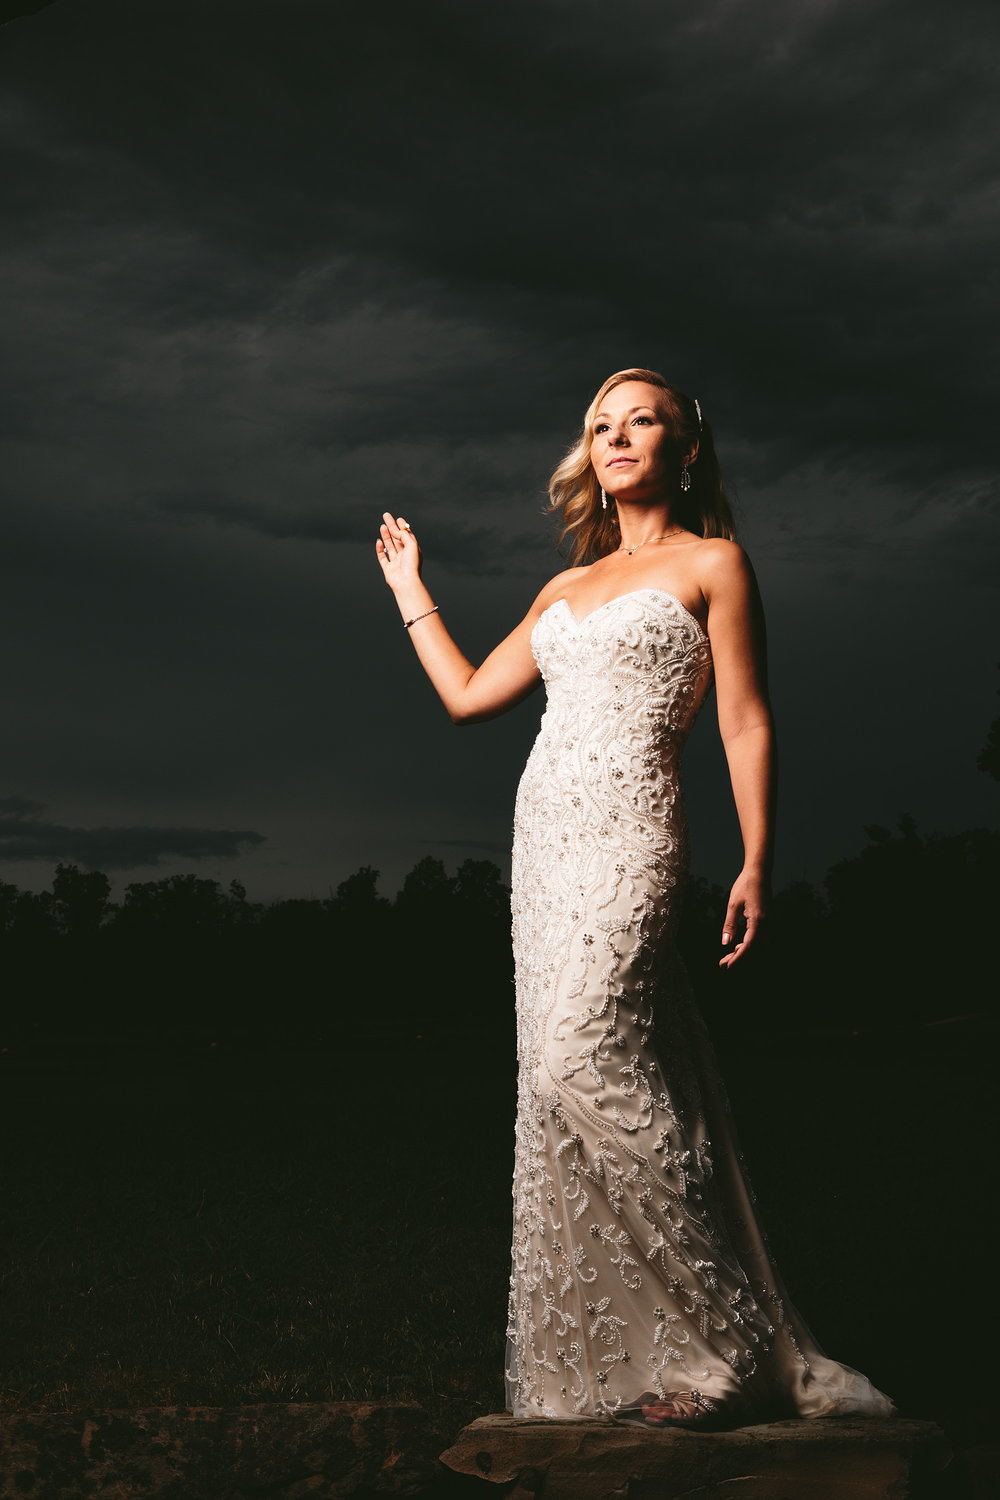 stonewater-golf-club-highland-heights-ohio-wedding-photographers_84.jpg